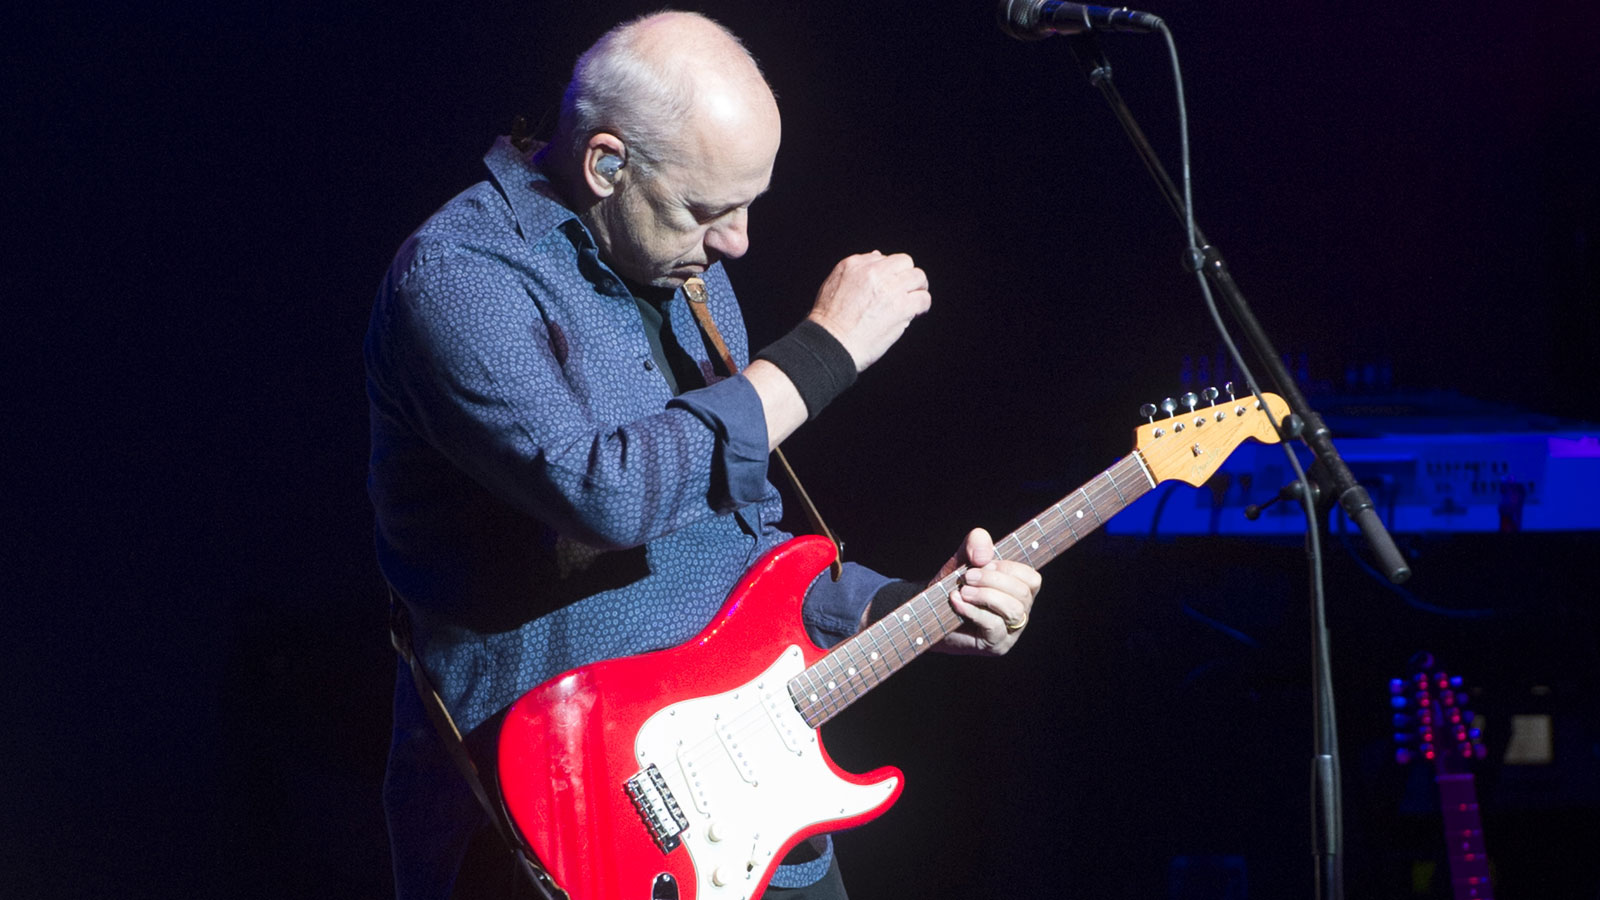 How to play guitar like... Mark Knopfler